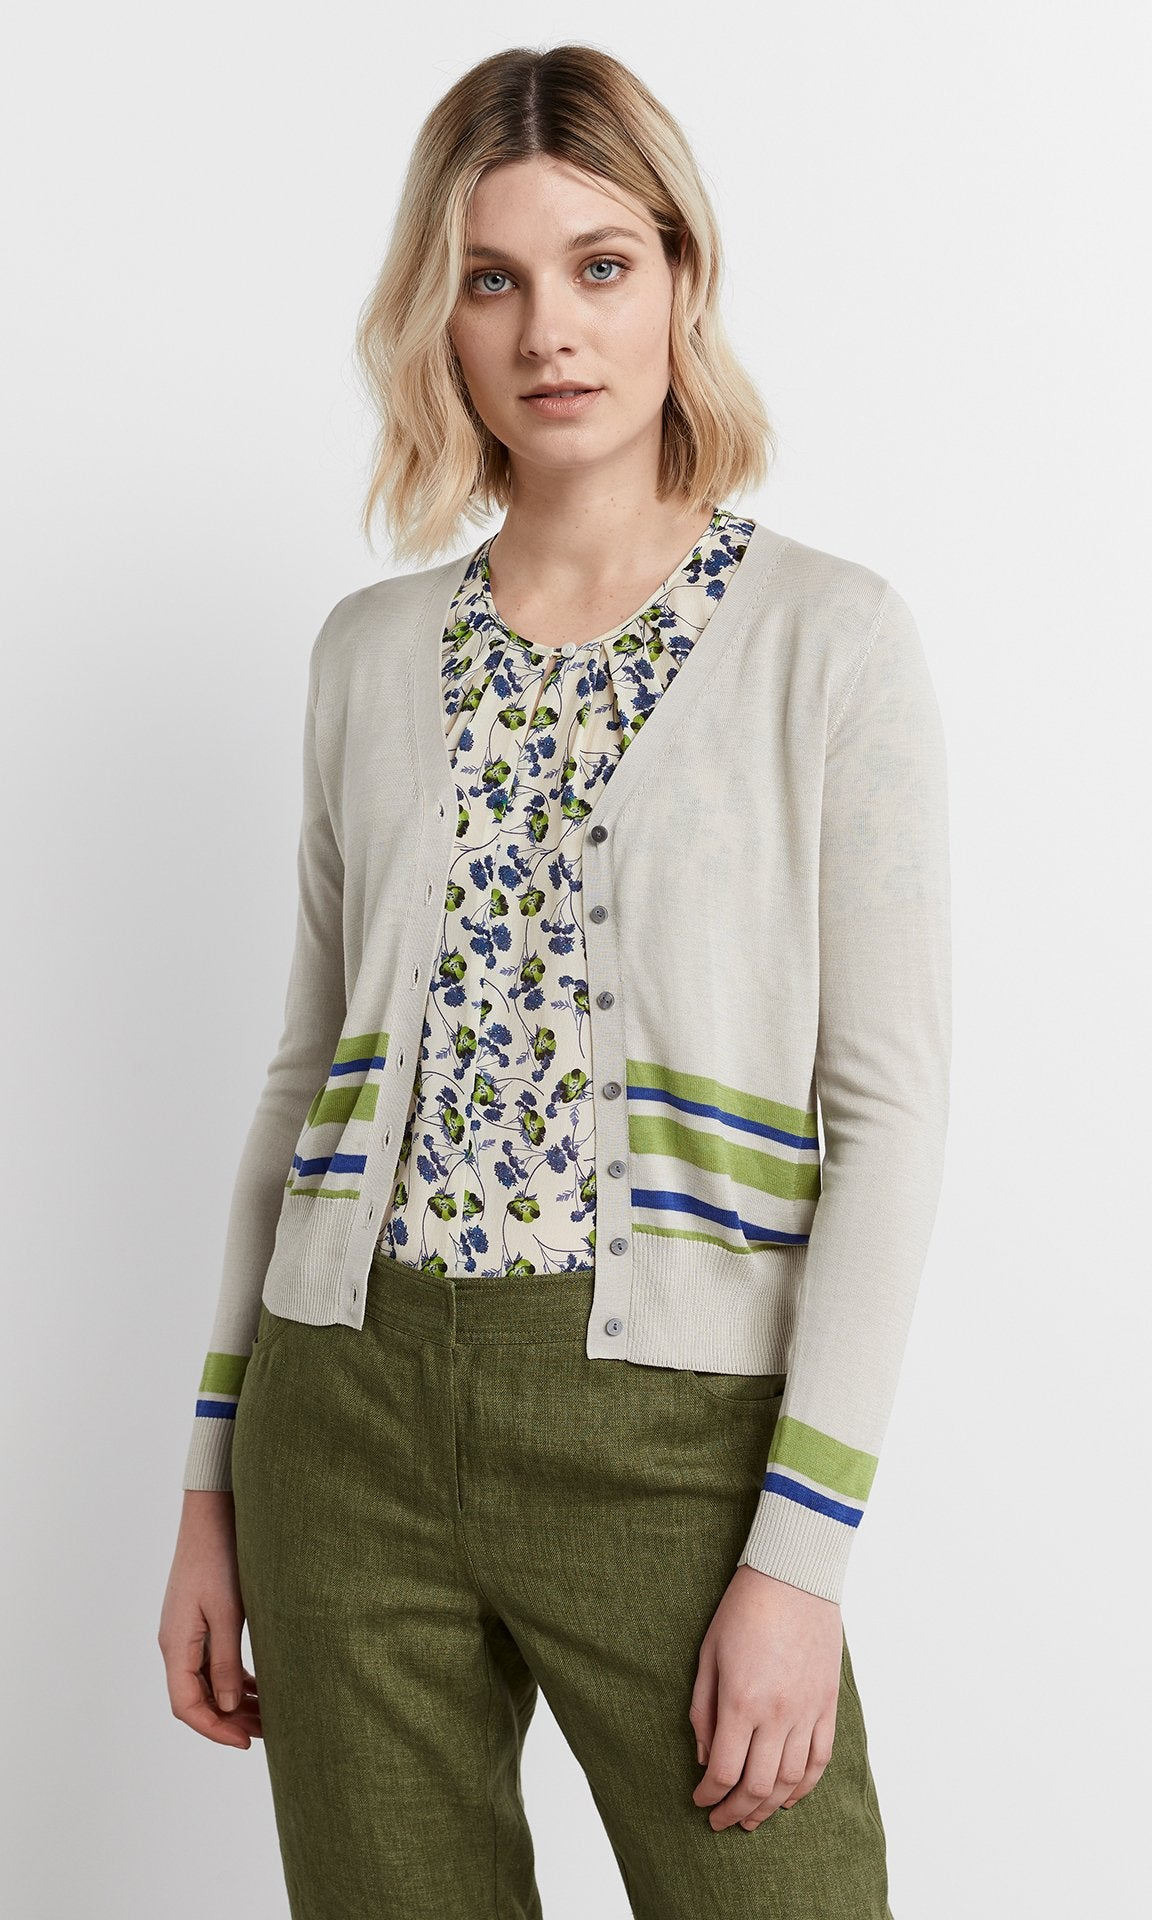 Manarola Cardigan - Putty/Lime/Cobalt